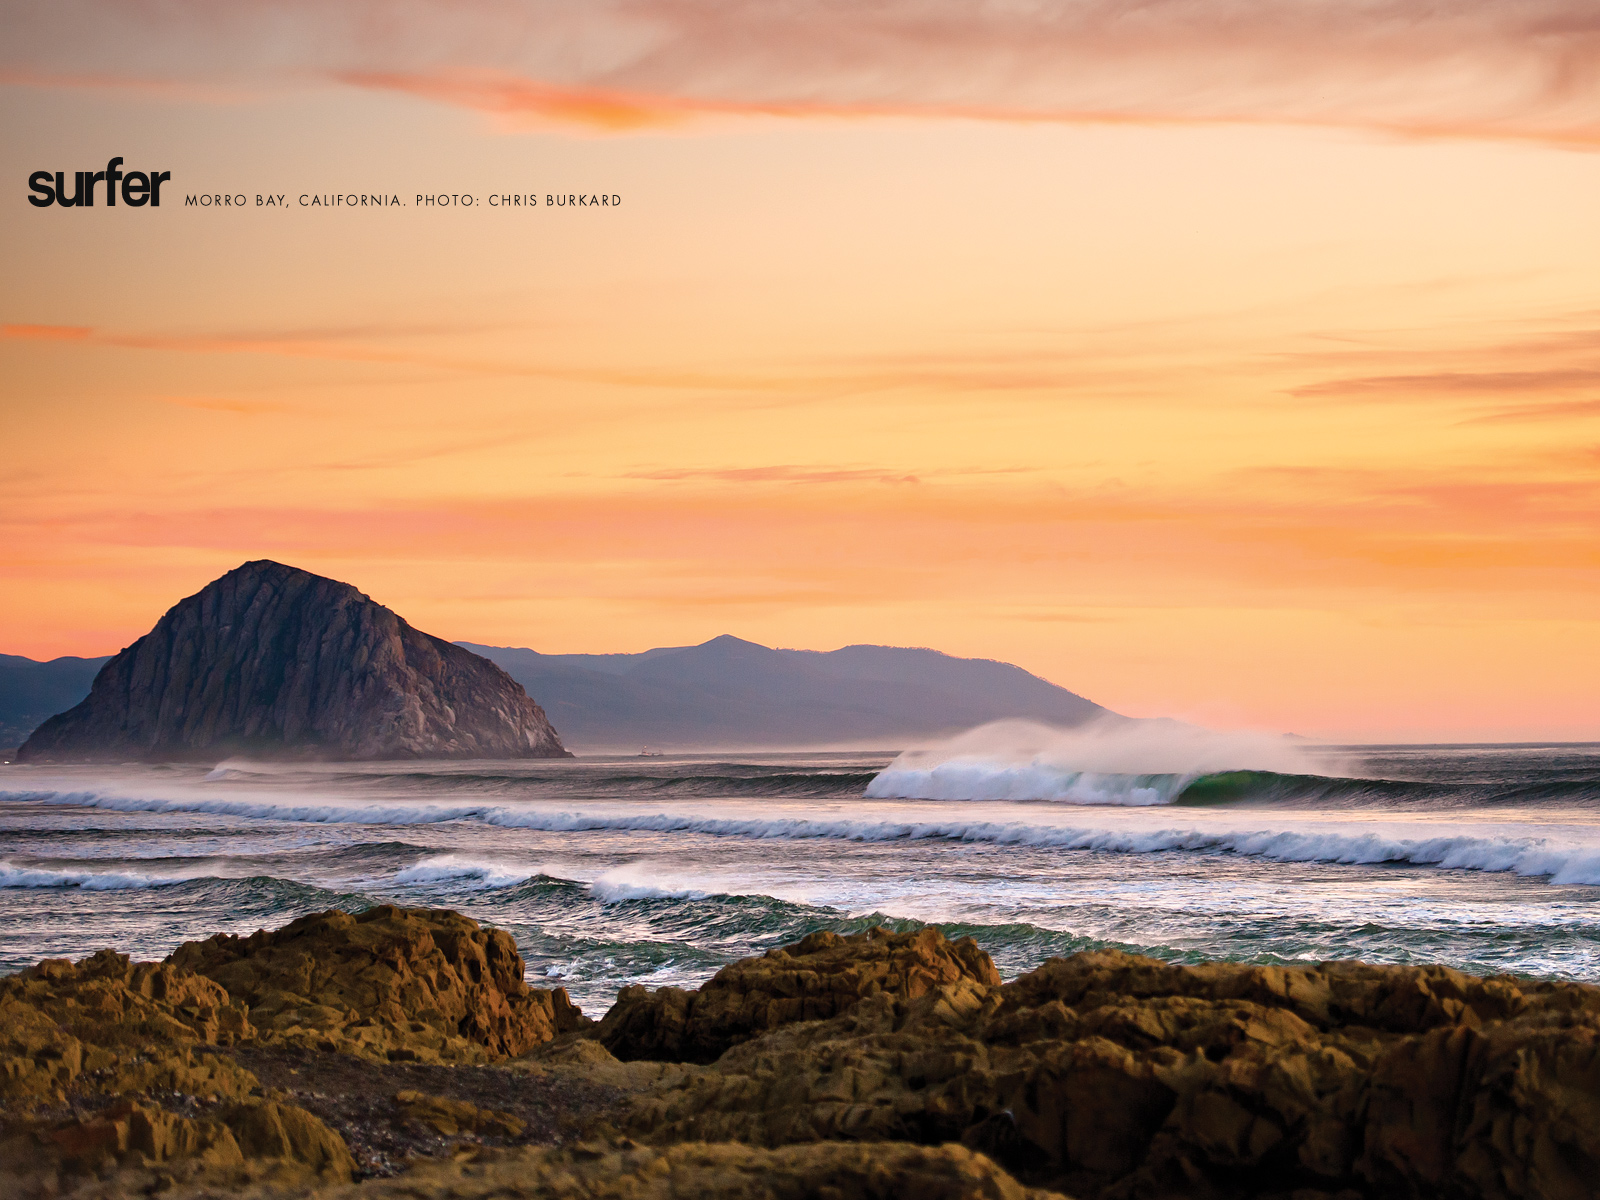 CHRIS BURKARD SURFER MAG WALLPAPER DOWNLOADS 1600x1200